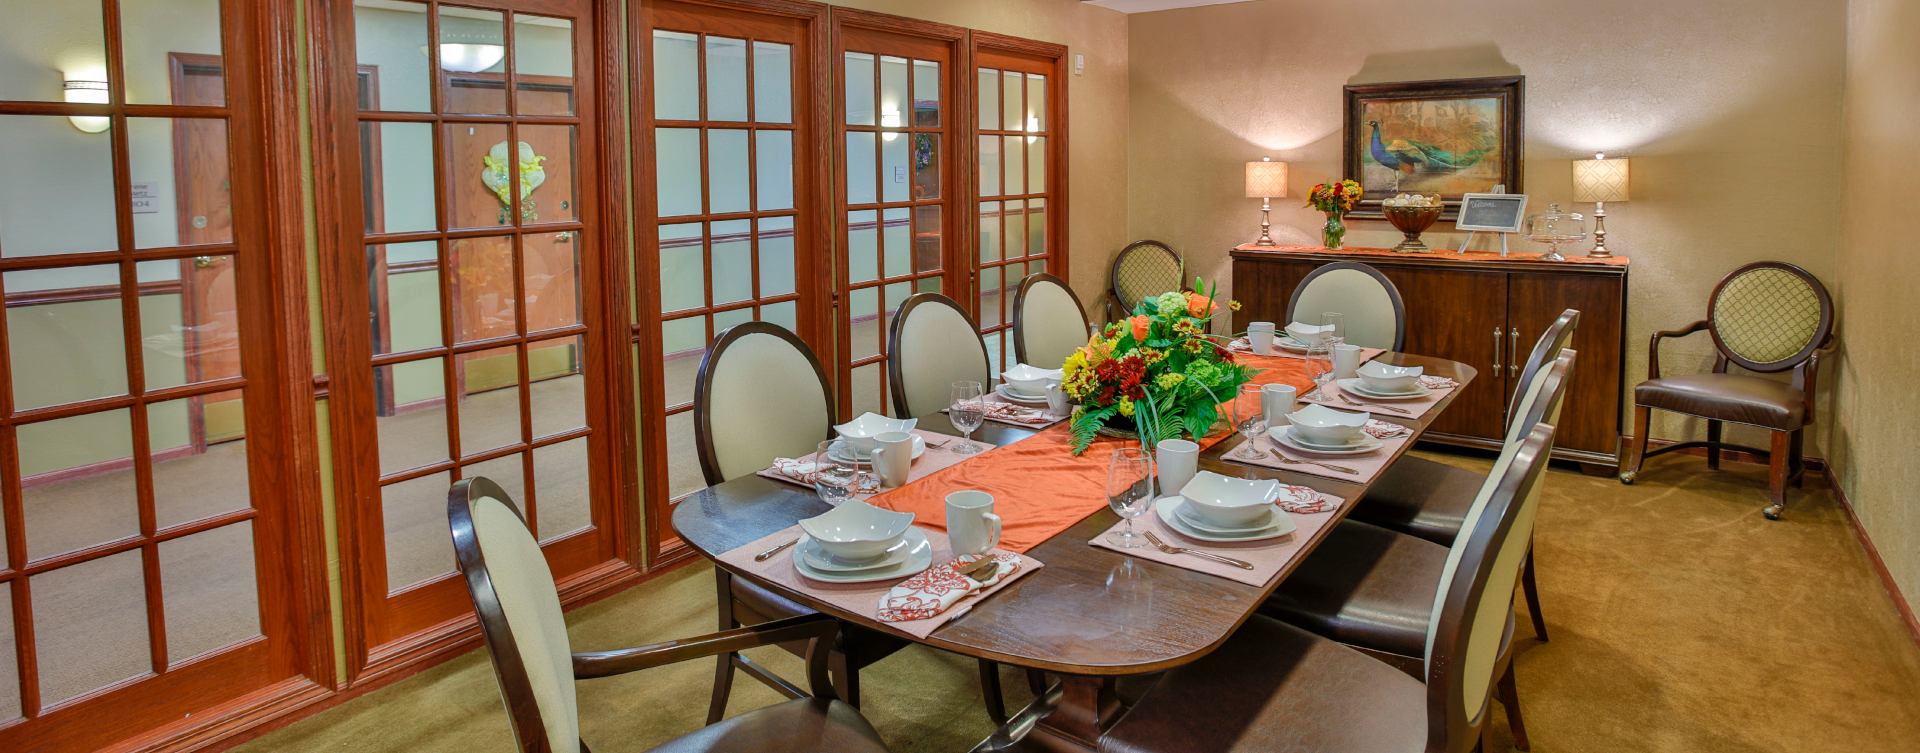 Food is best when shared with family and friends in the private dining room at Bickford of Springfield